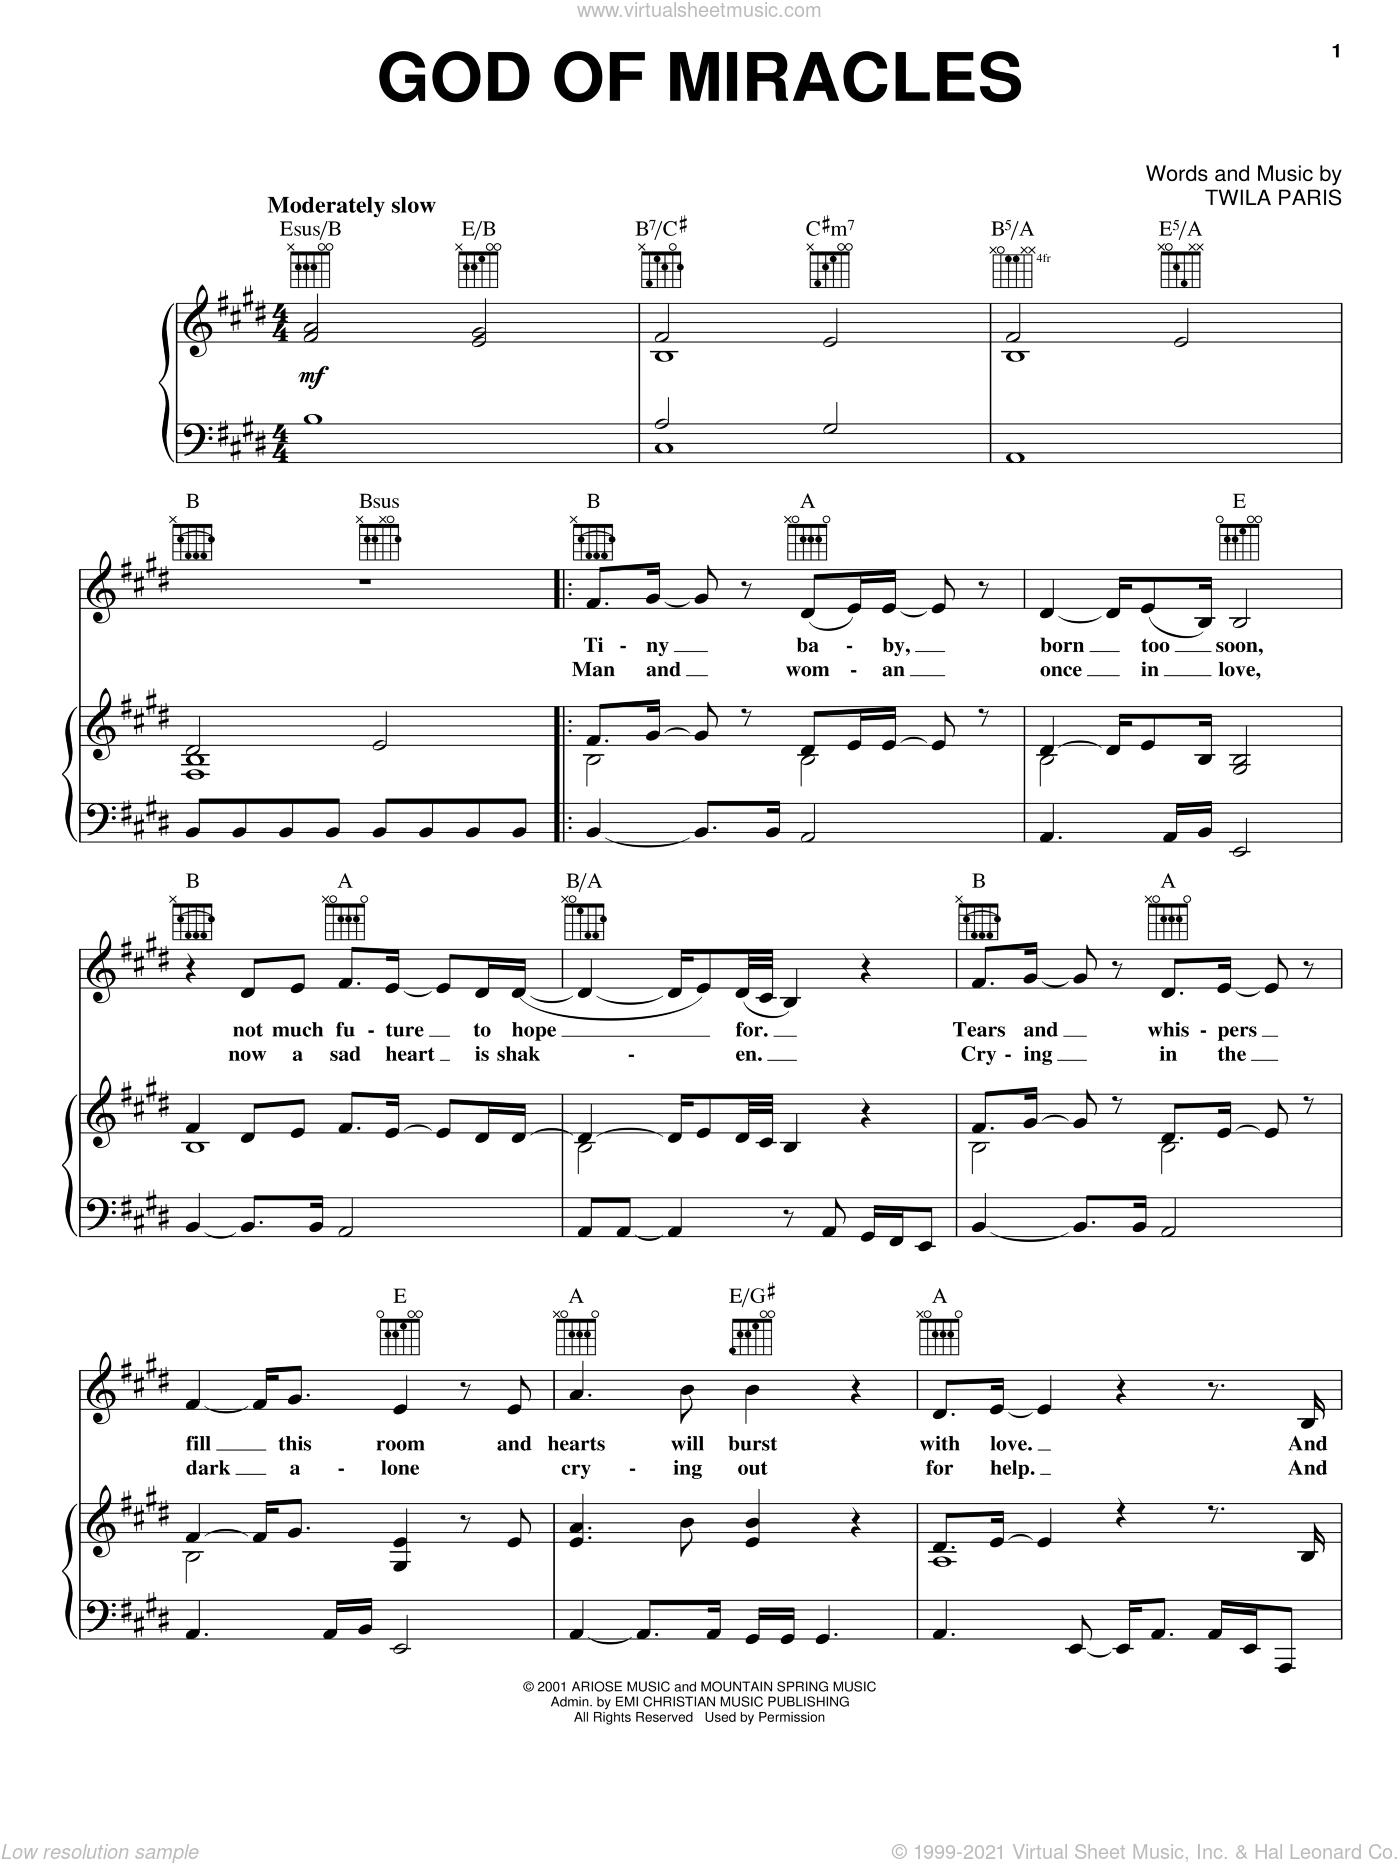 God Of Miracles sheet music for voice, piano or guitar by Twila Paris. Score Image Preview.